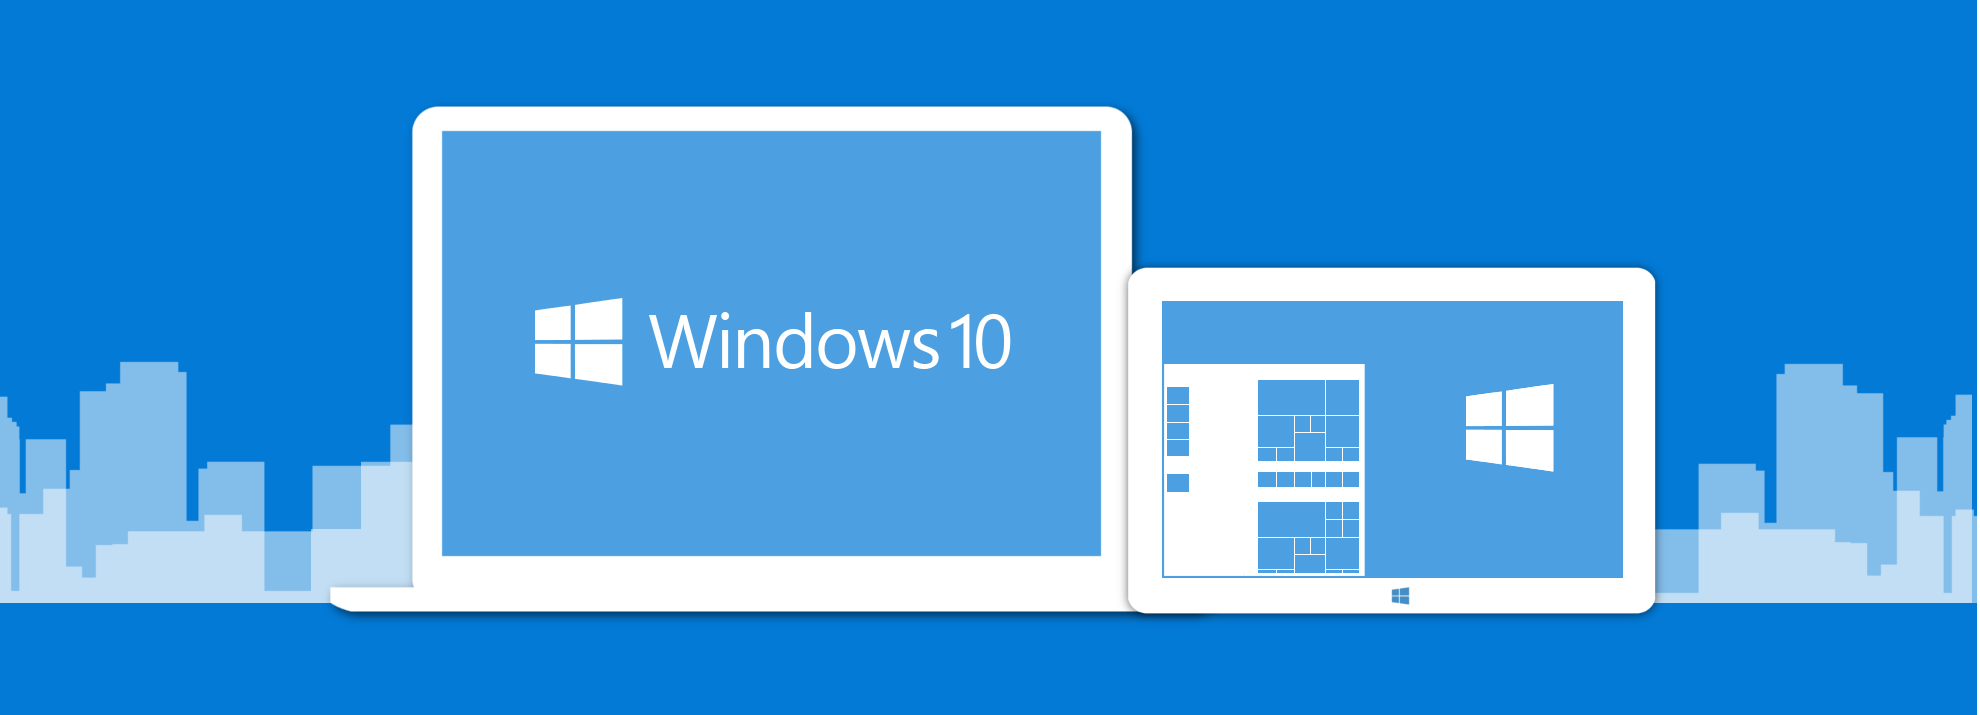 Enterprises and Windows 10 - Latest Operating System from Microsoft